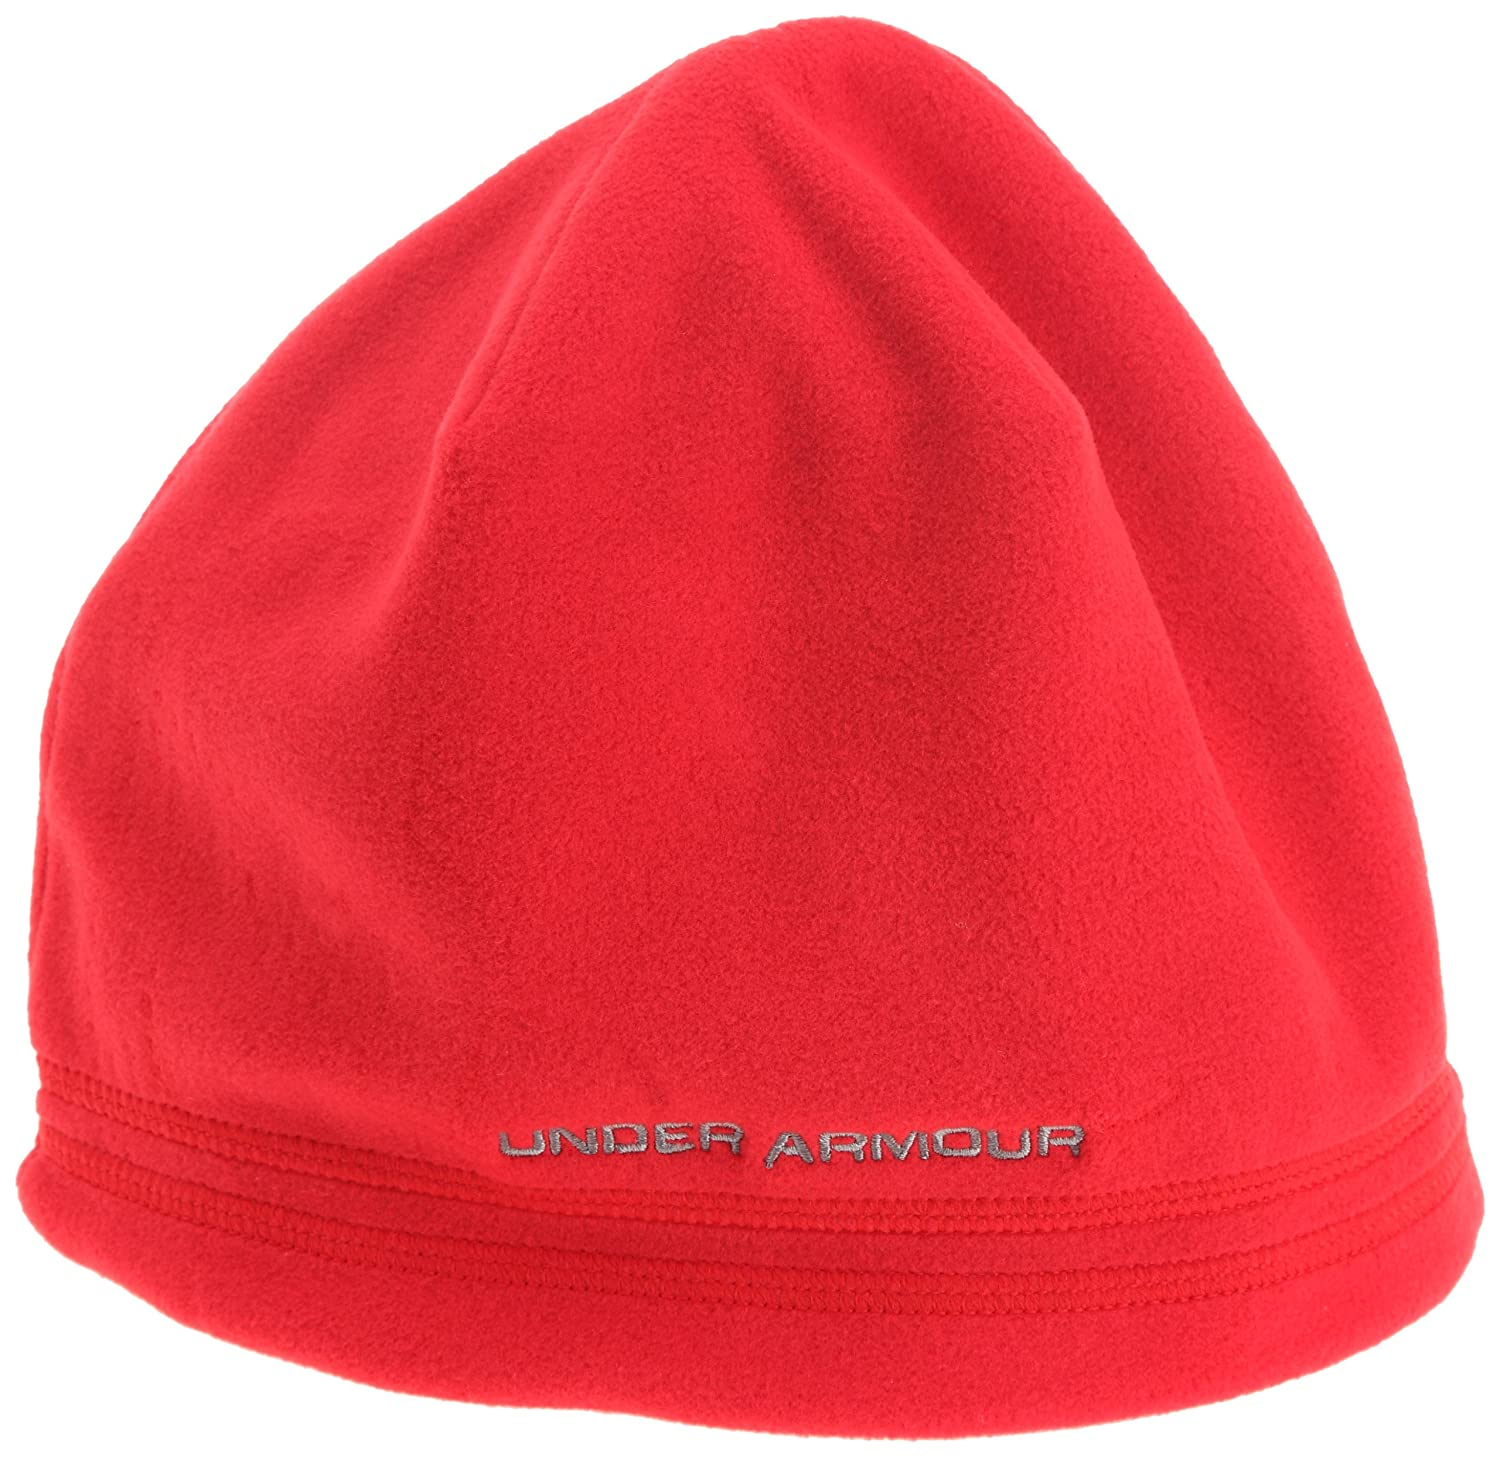 964cbe41136 Under Armour Blustery Beanie Men s Hat red Size One size  Amazon.co.uk   Sports   Outdoors